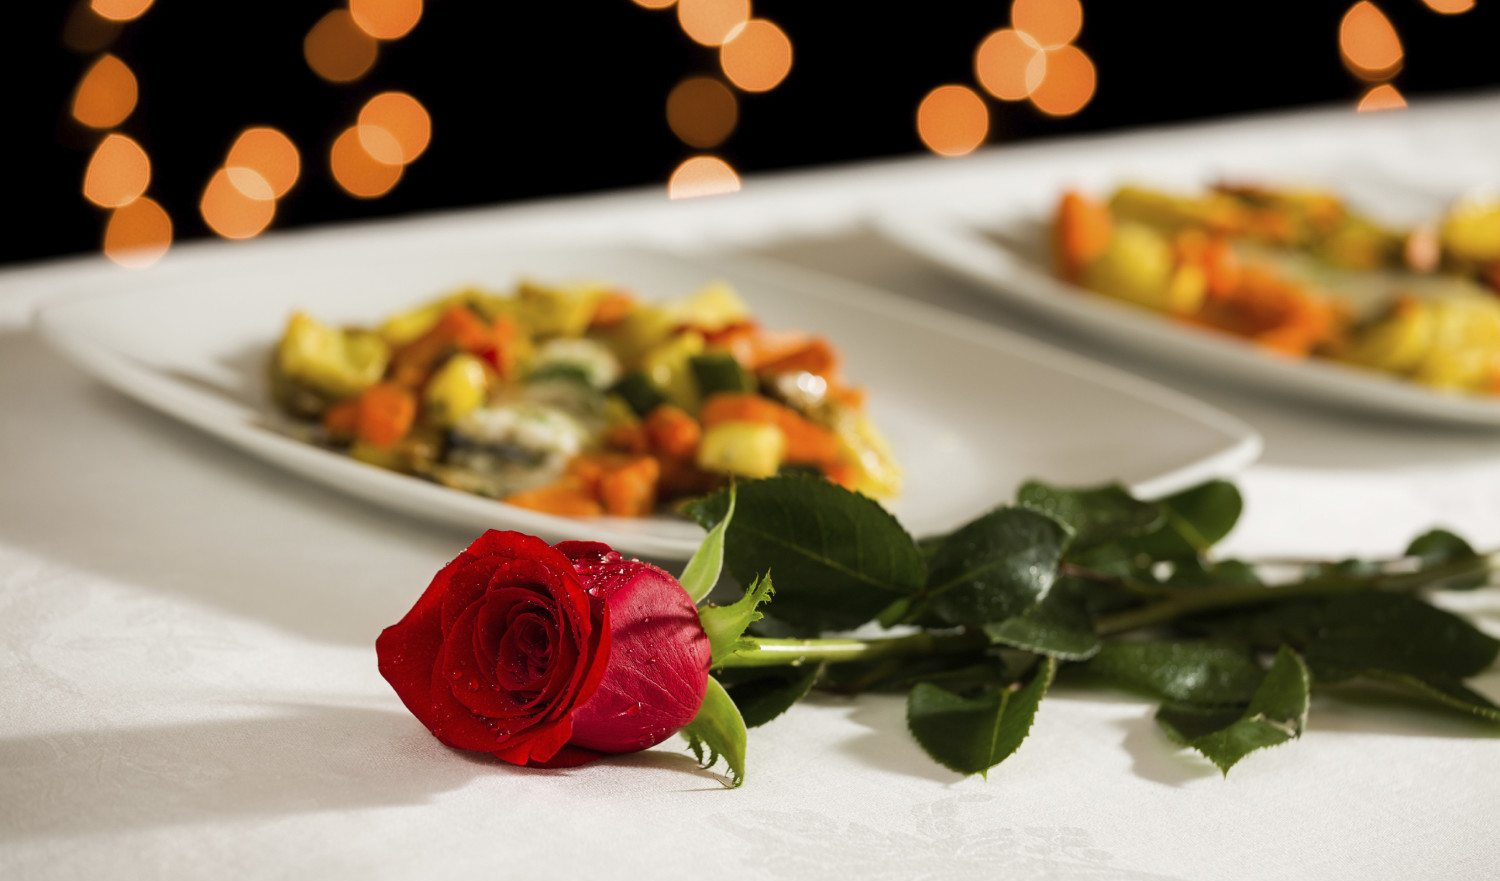 A rose for Valentine's Day dinner at the restaurant